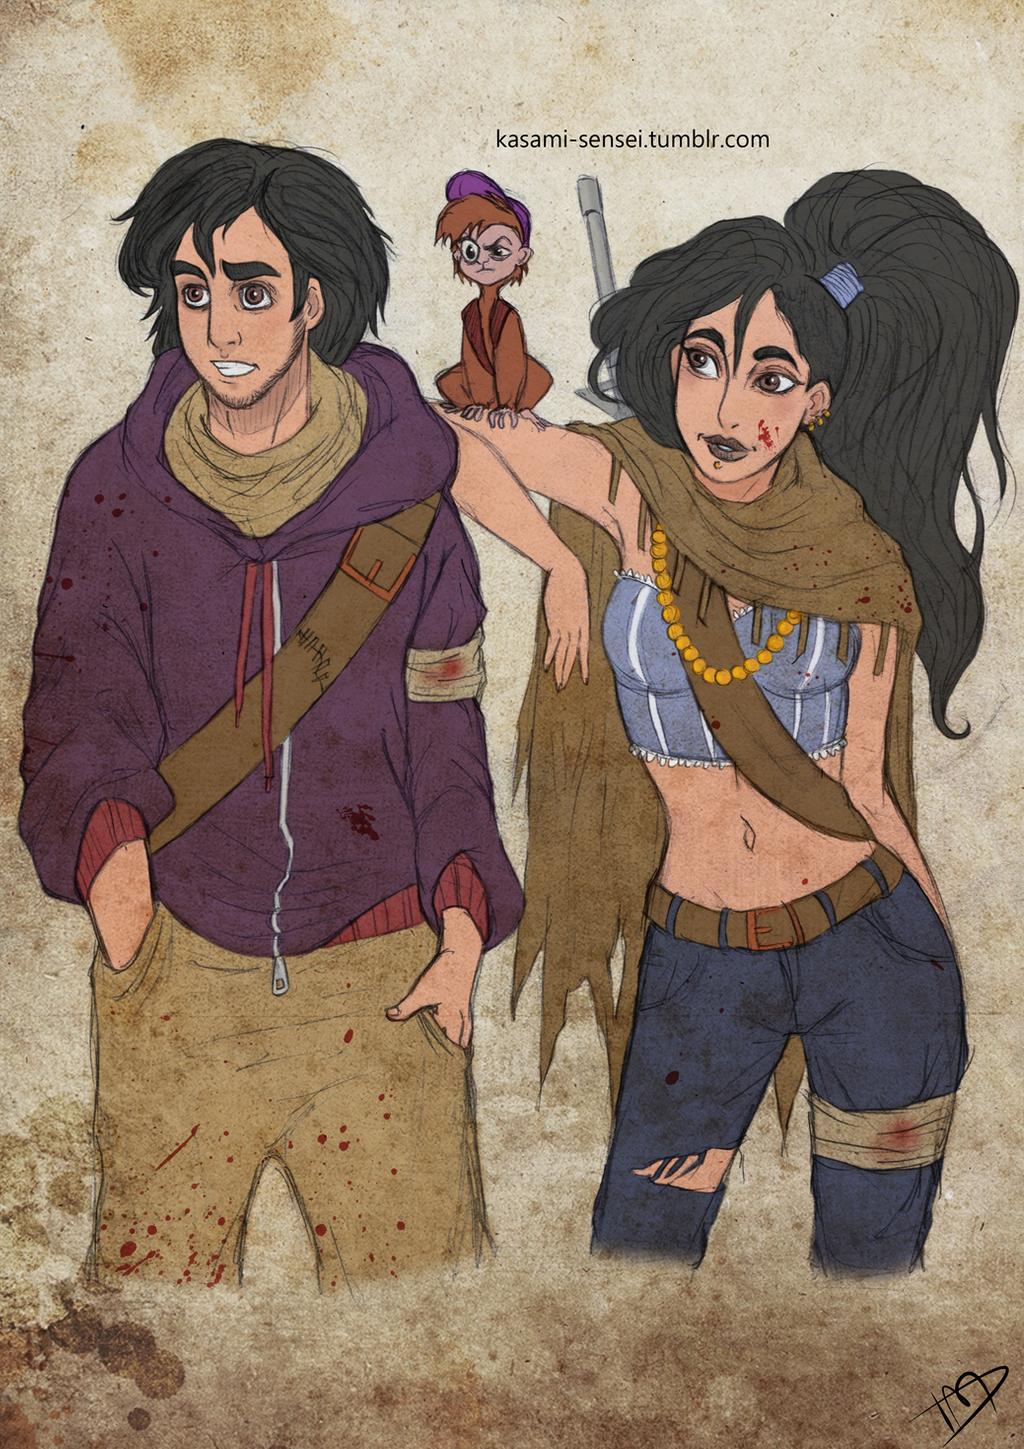 the_walking_disney___aladin__jasmine_and_abu_by_kasami_sensei_d7hn5fe-fullview.jpg